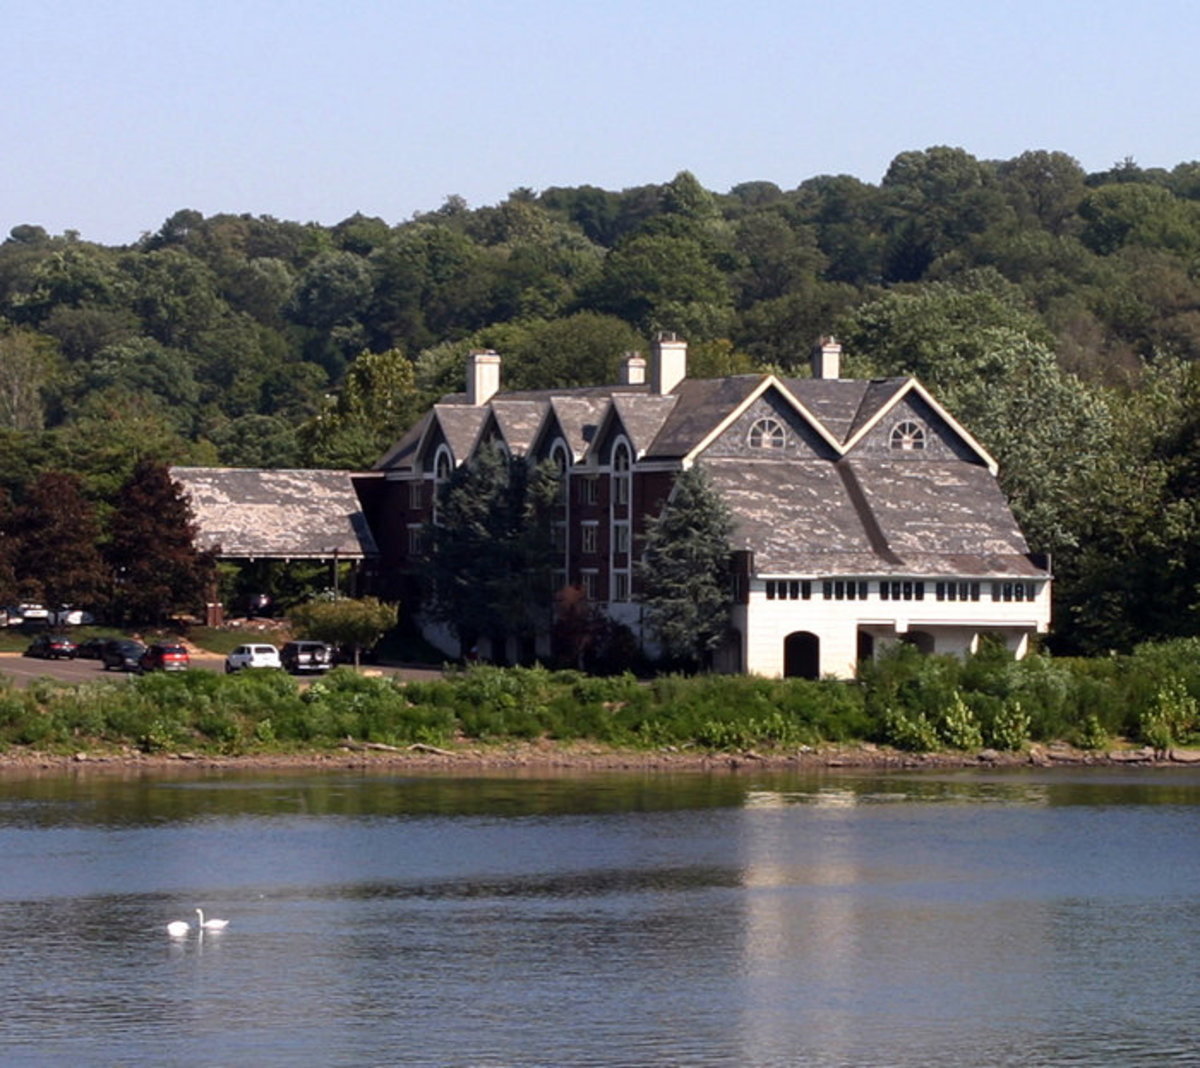 The Inn at Lambertville Station, looking across the Delaware River from New Hope, Pennsylvania